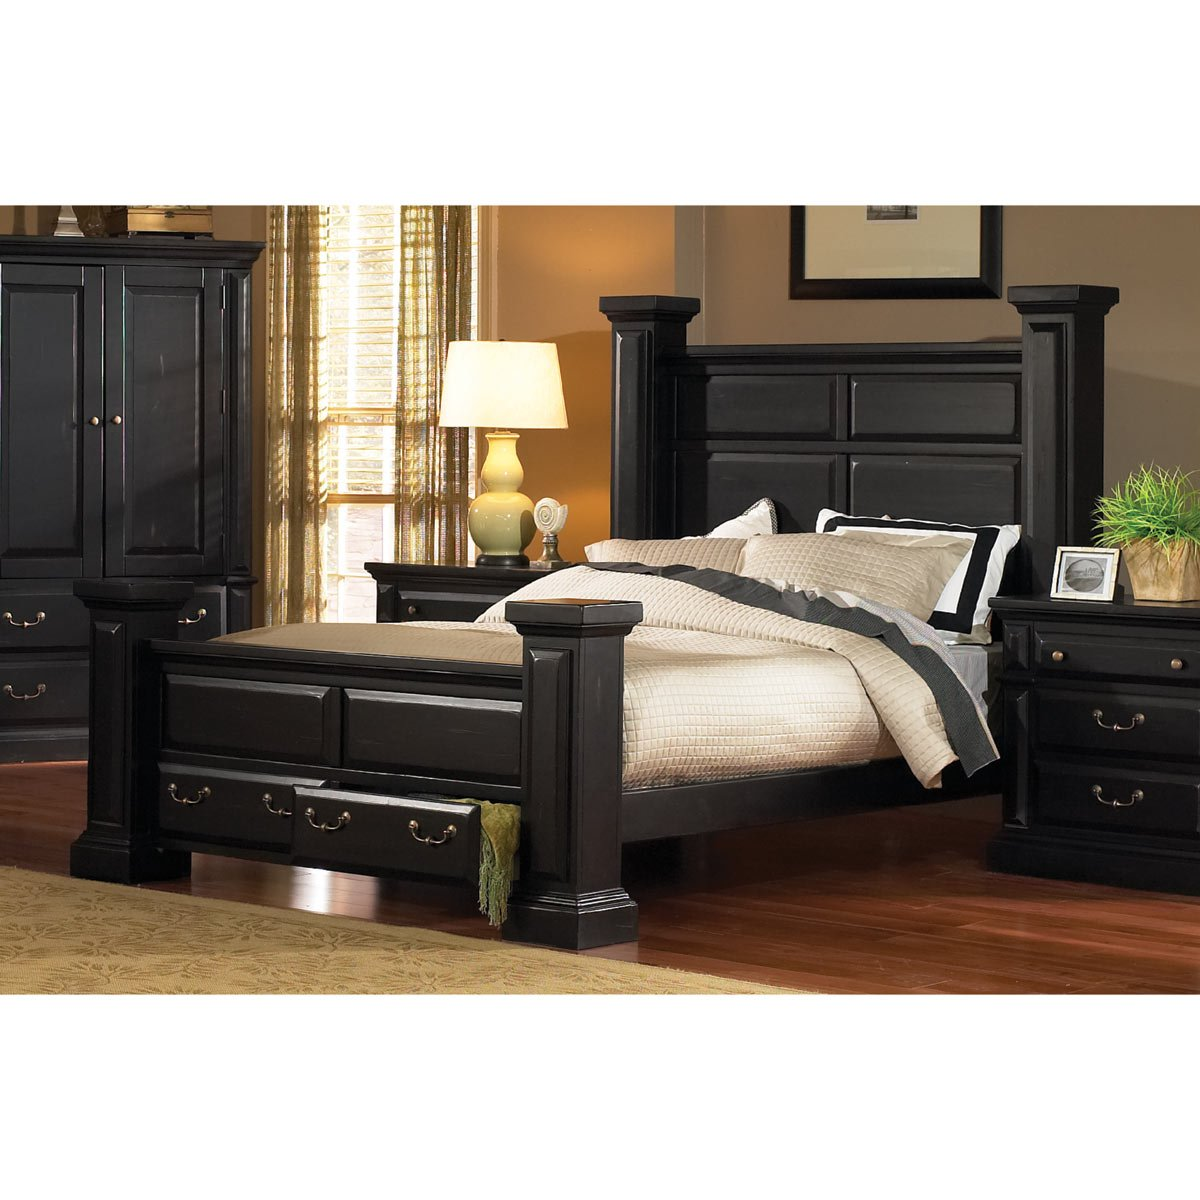 cheap bed bedsetcheap walmart dressers black best queen for of sets set bedroom size adorable beds pinterest sheet with